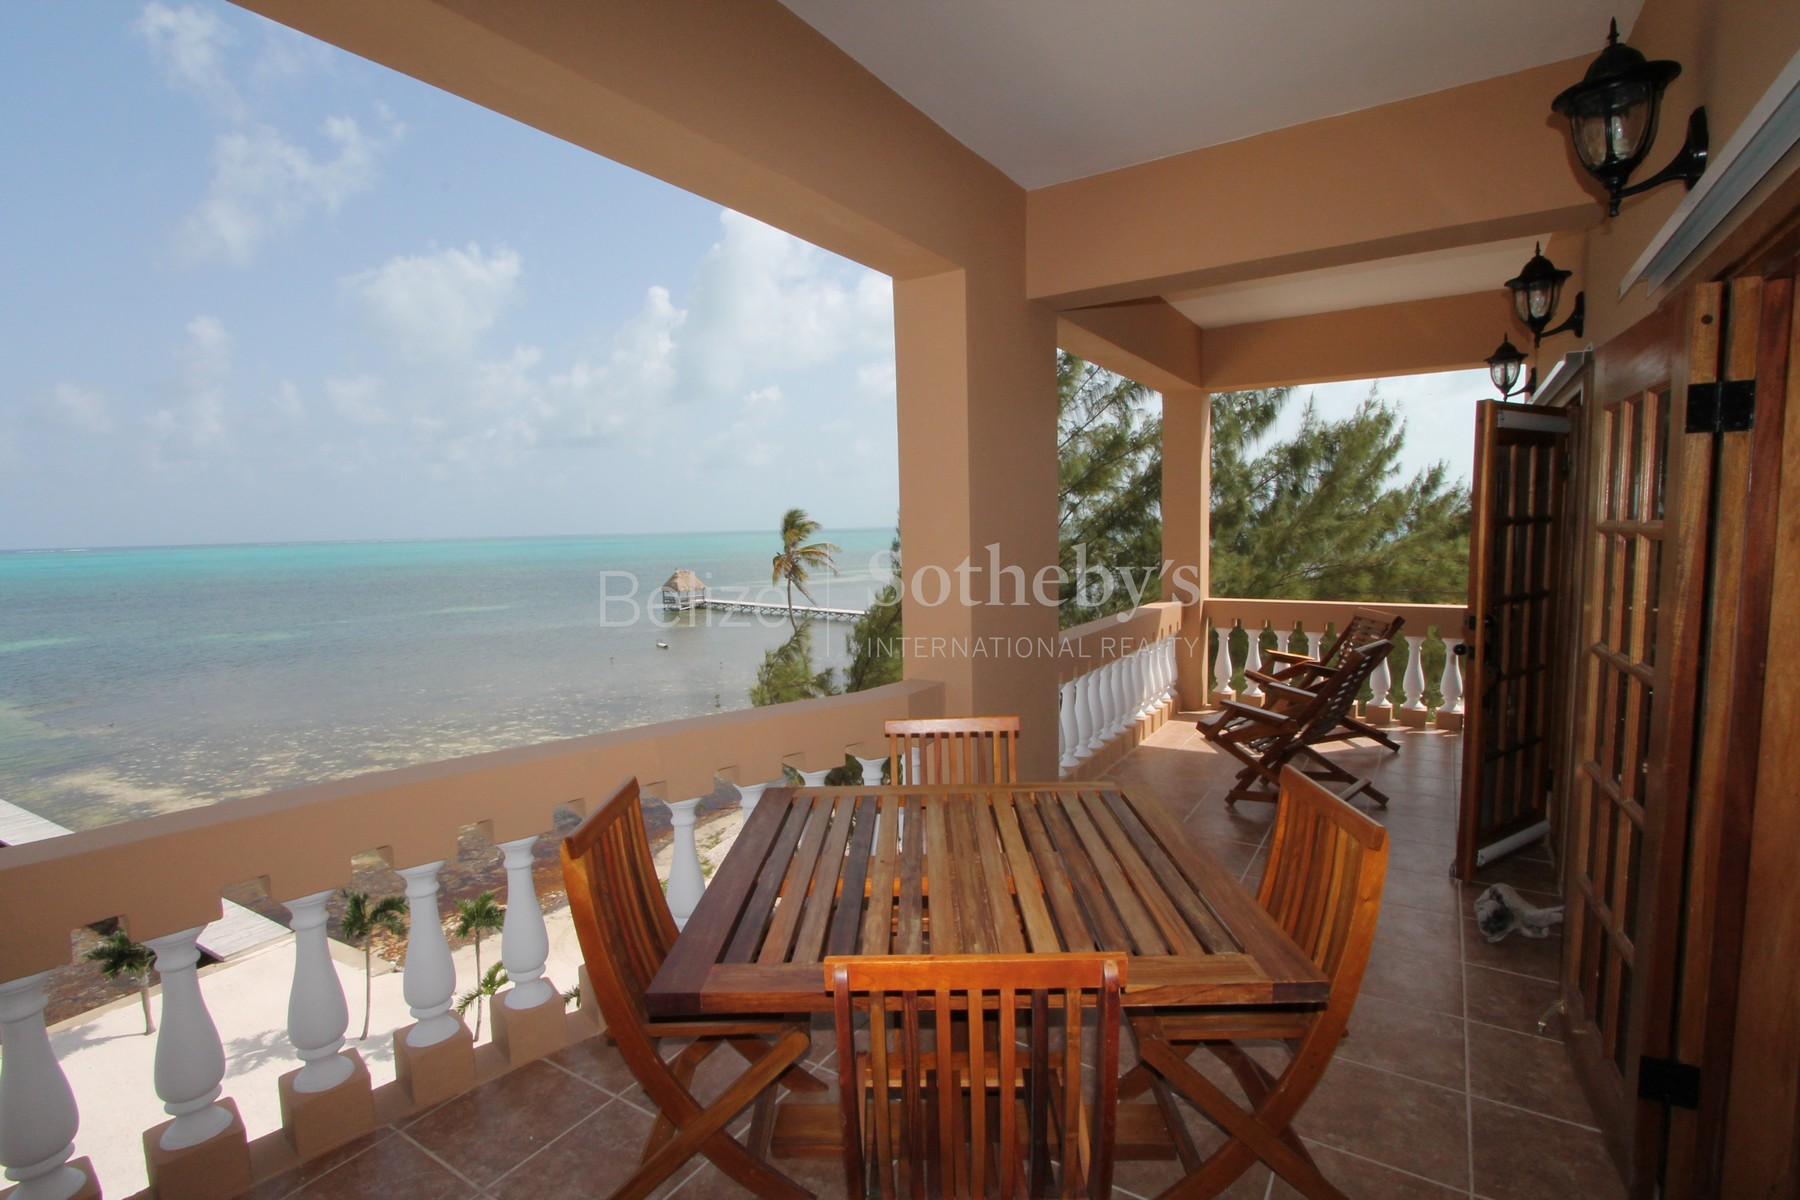 Additional photo for property listing at 4th Floor Luxury Penthouse Located at Hol Chan Reef Resort!!! San Pedro Town, Ambergris Caye Belize